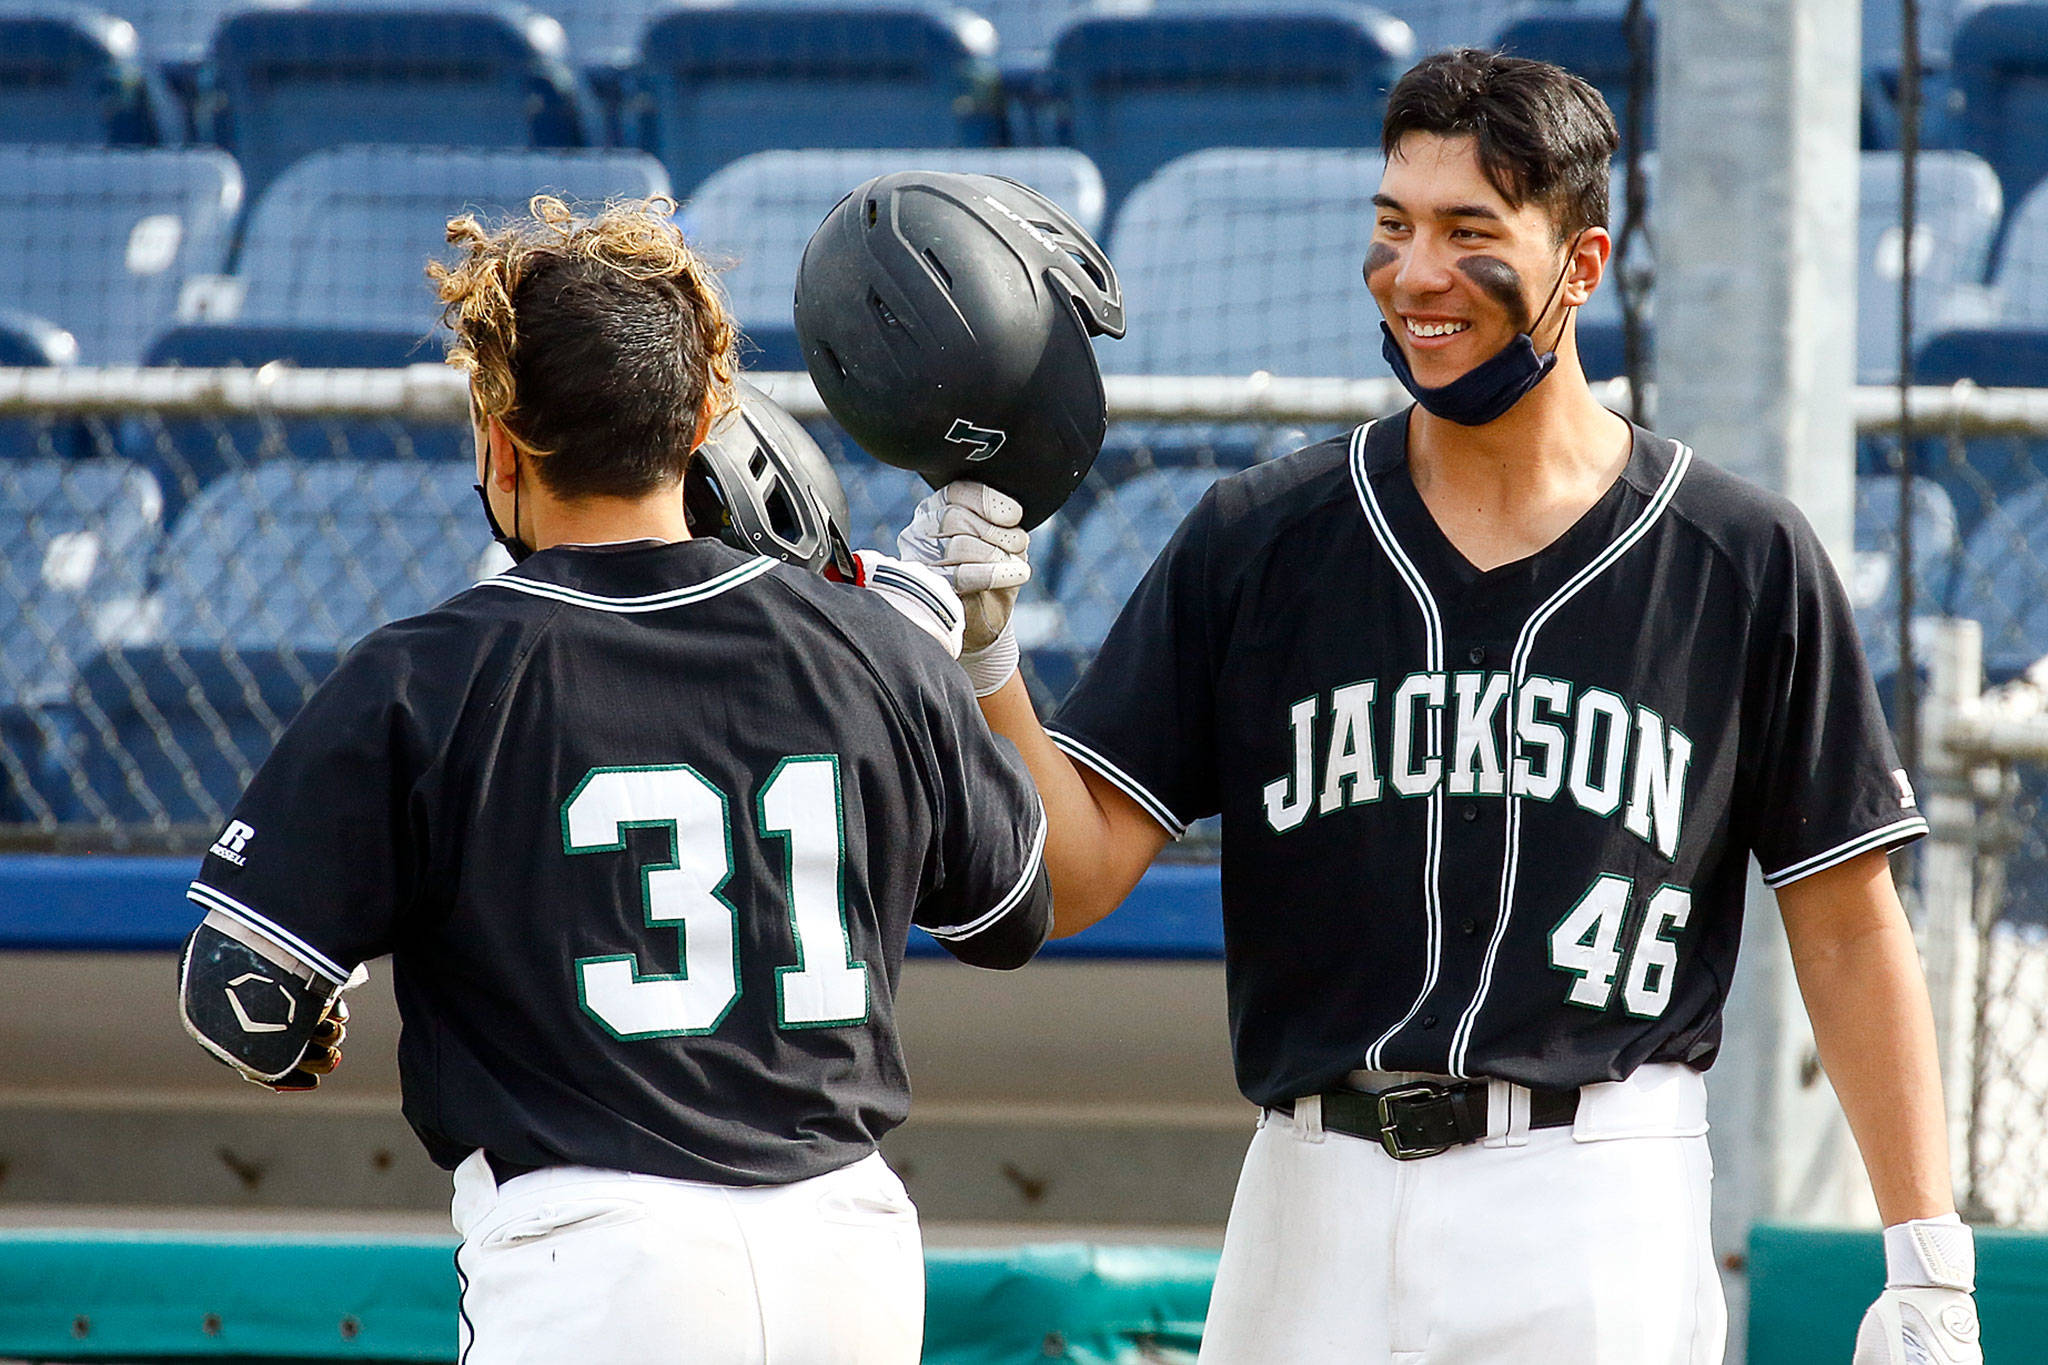 Jackson's Ryan Contreras is welcomed by teammate Dominic Hellman after Contreras' home run Friday afternoon at Funko Field at Memorial Stadium in Everett on April 23, 2021. (Kevin Clark / The Herald)